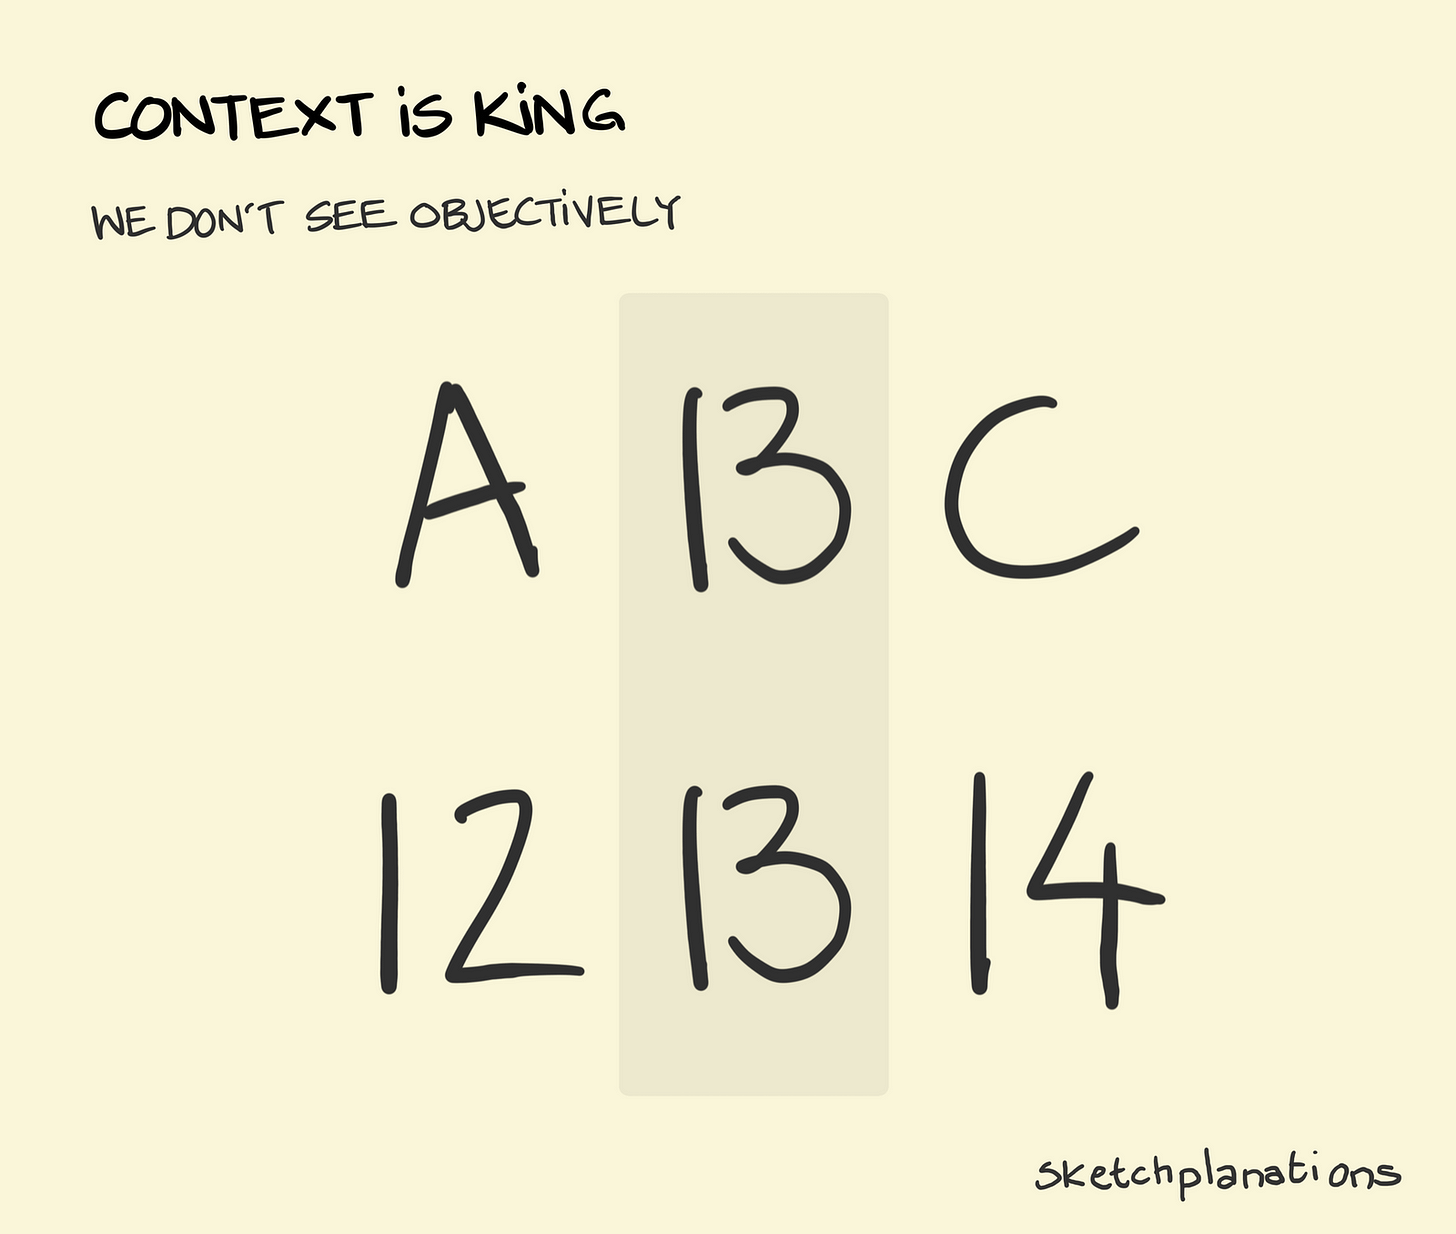 Context is king - Sketchplanations